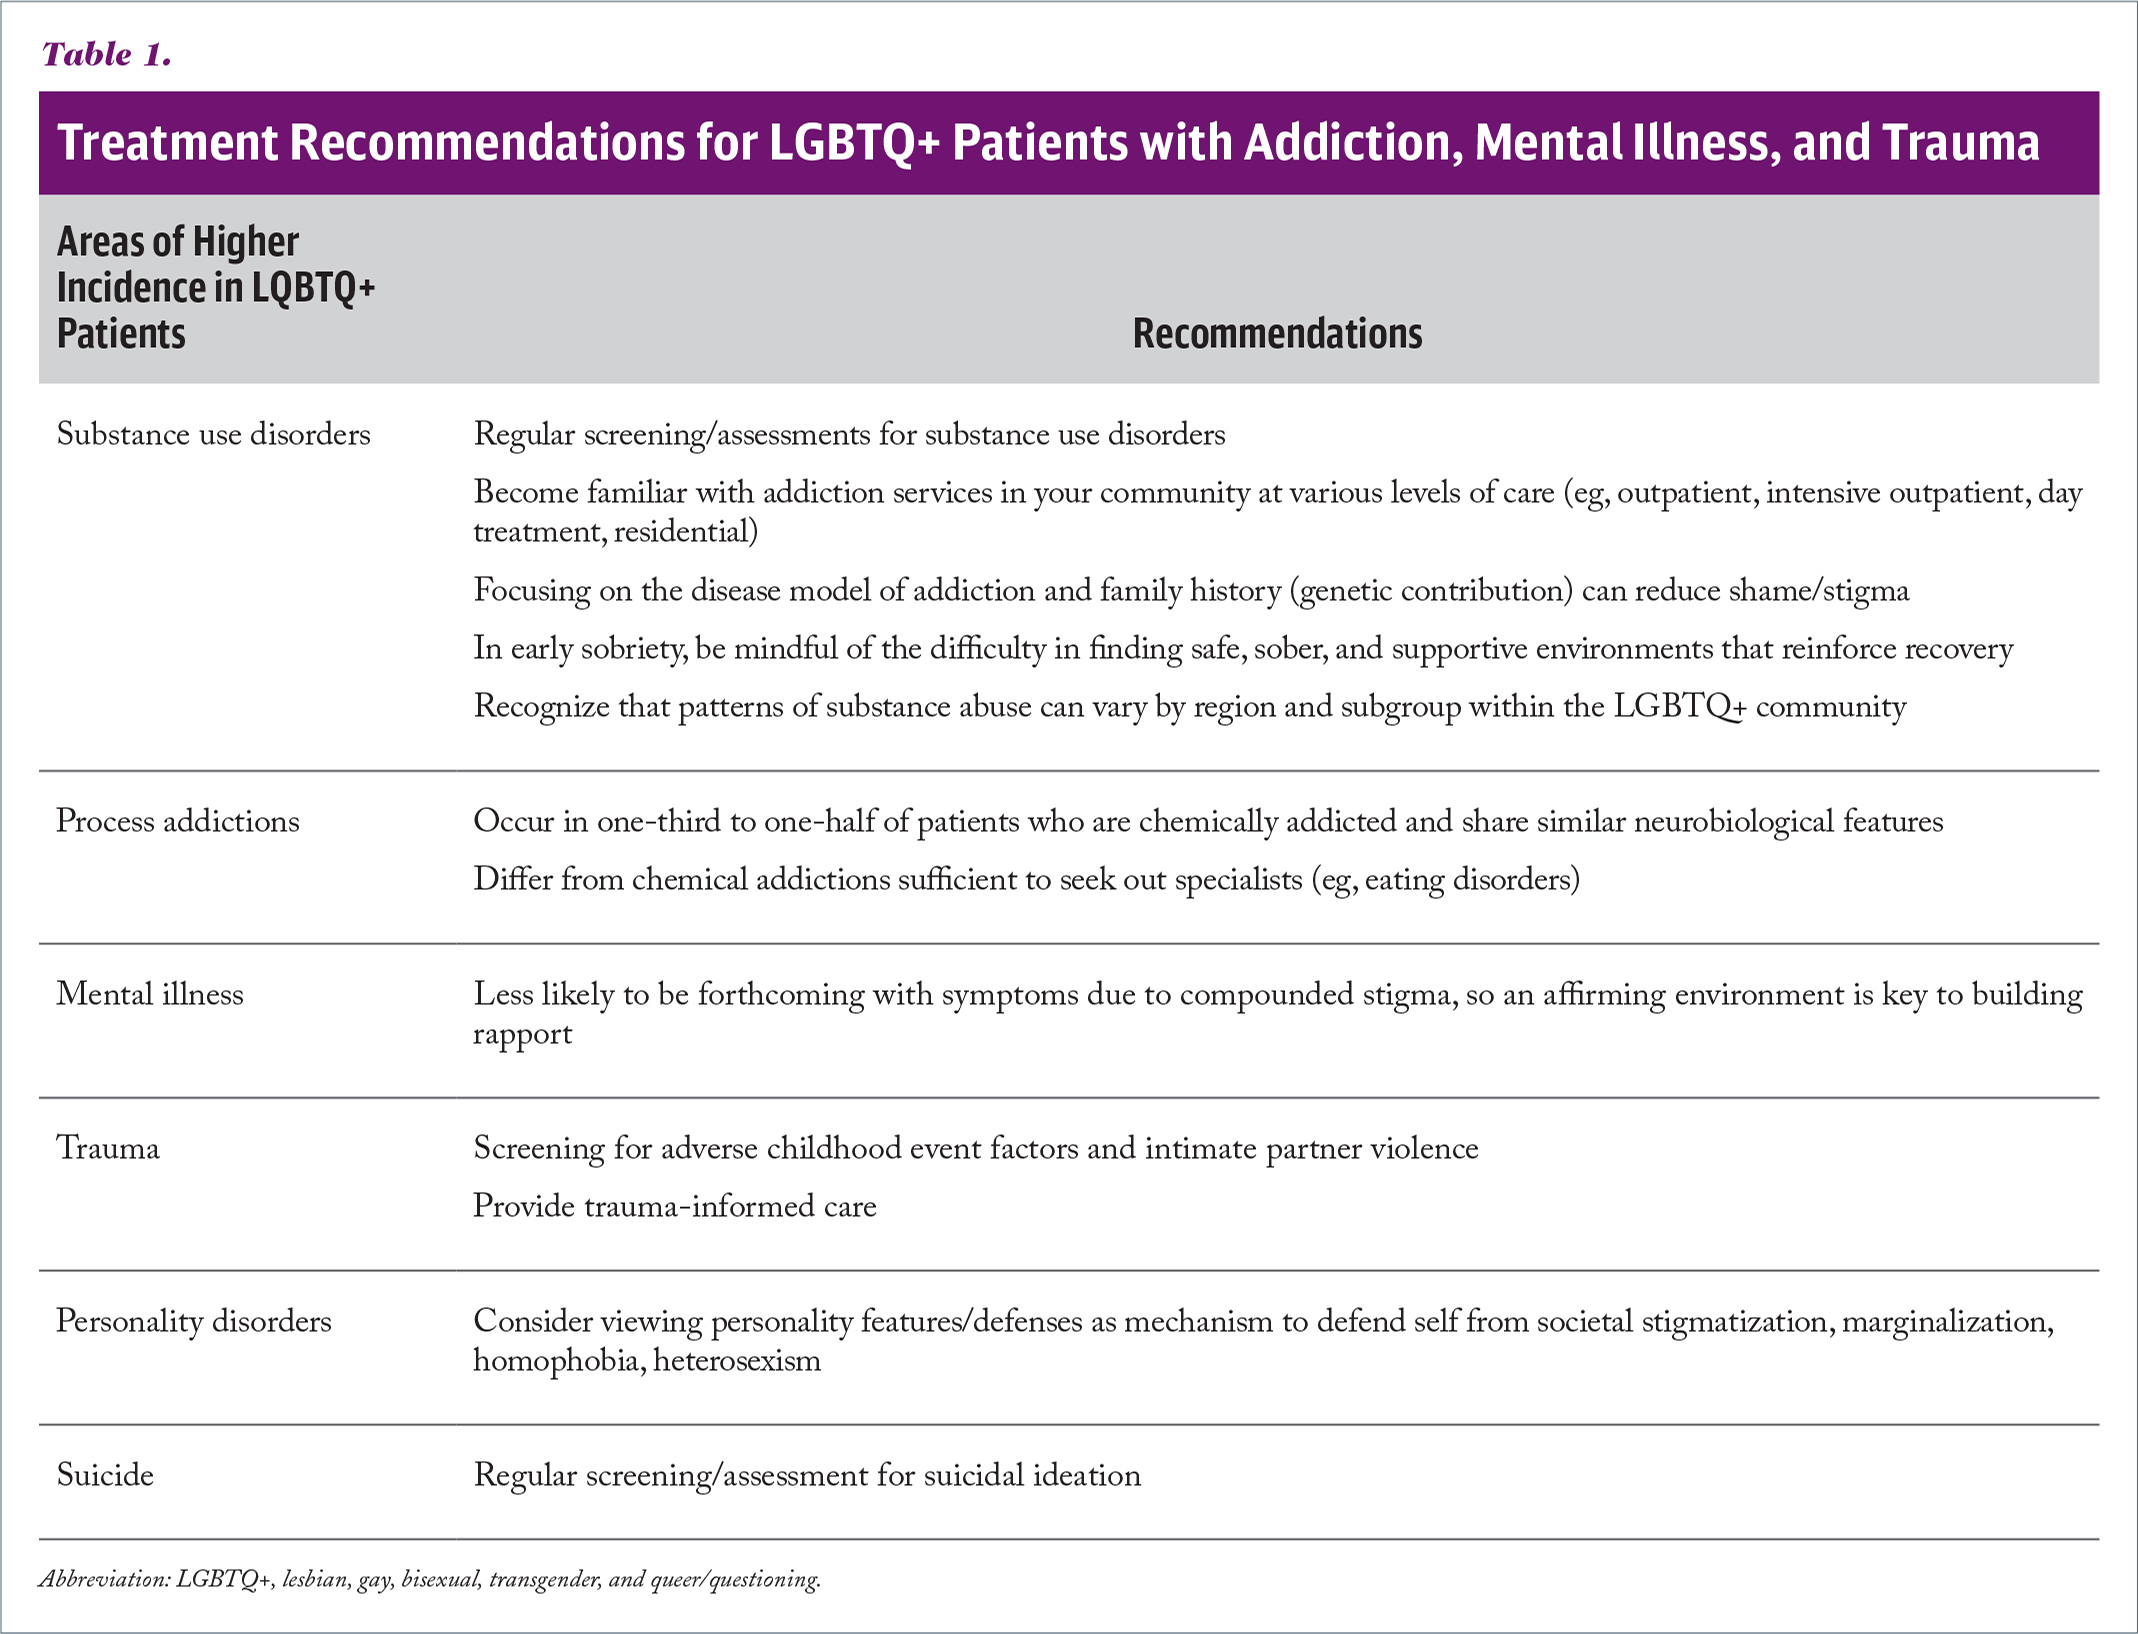 Treatment Recommendations for LGBTQ+ Patients with Addiction, Mental Illness, and Trauma